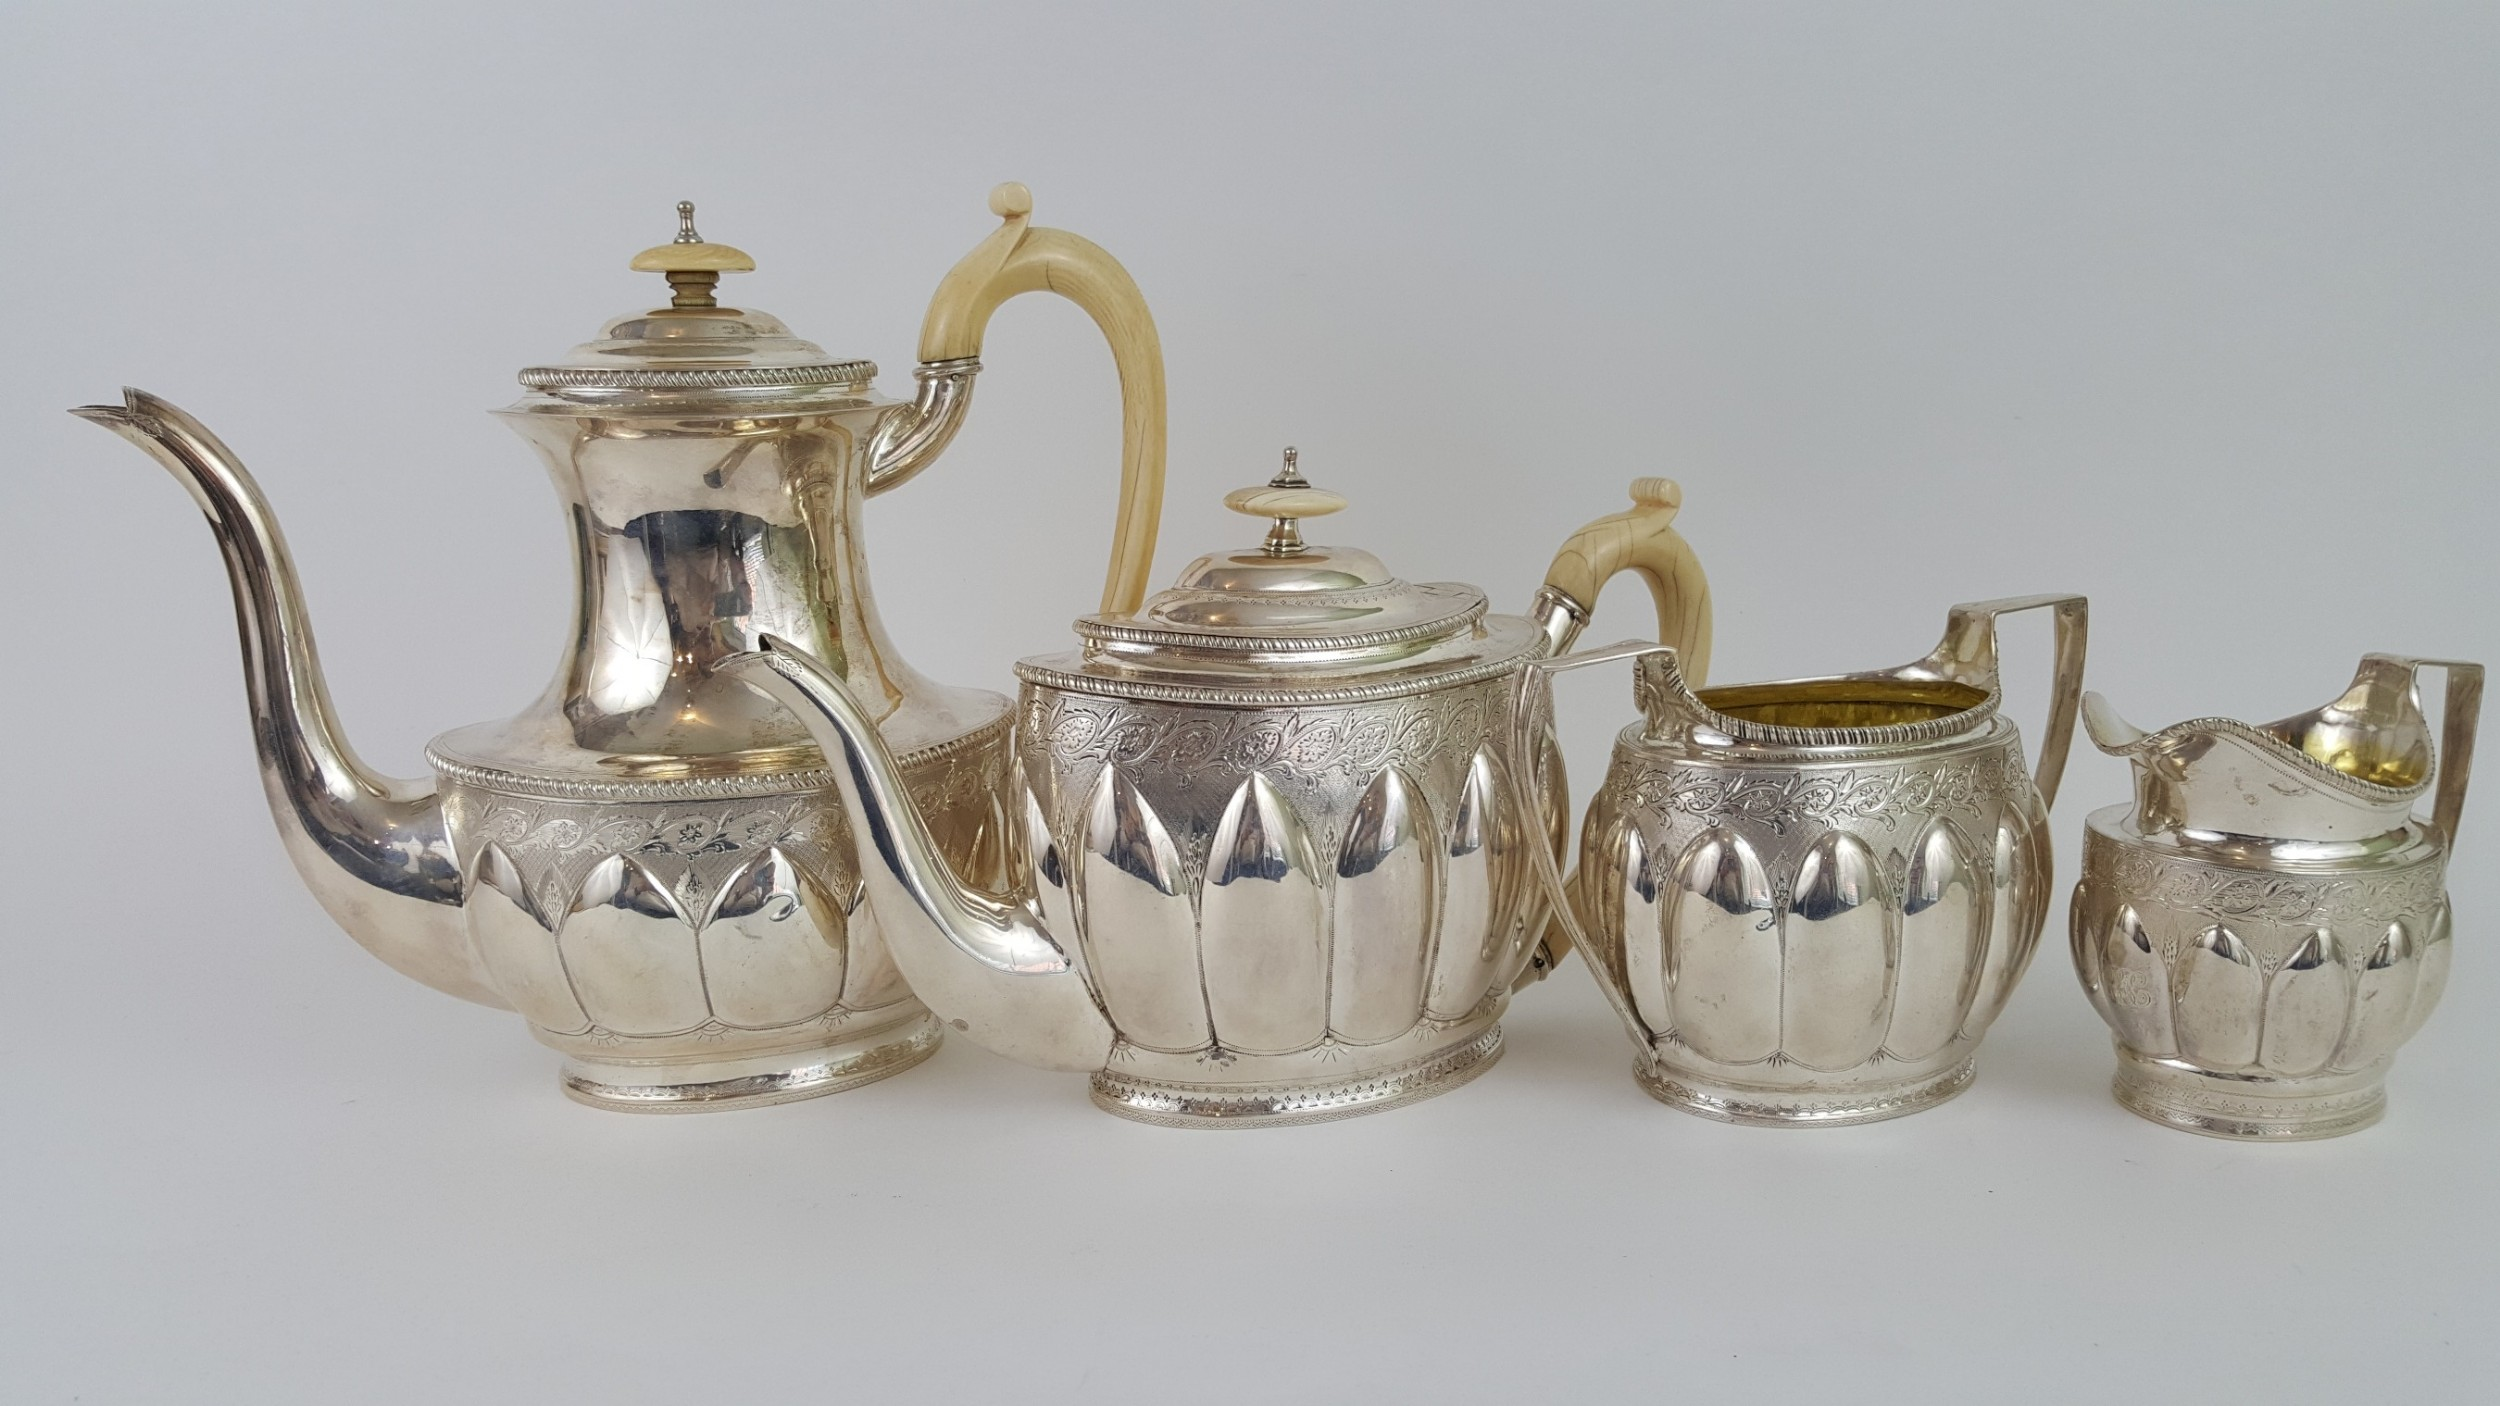 19th century 4 piece victorian tea set